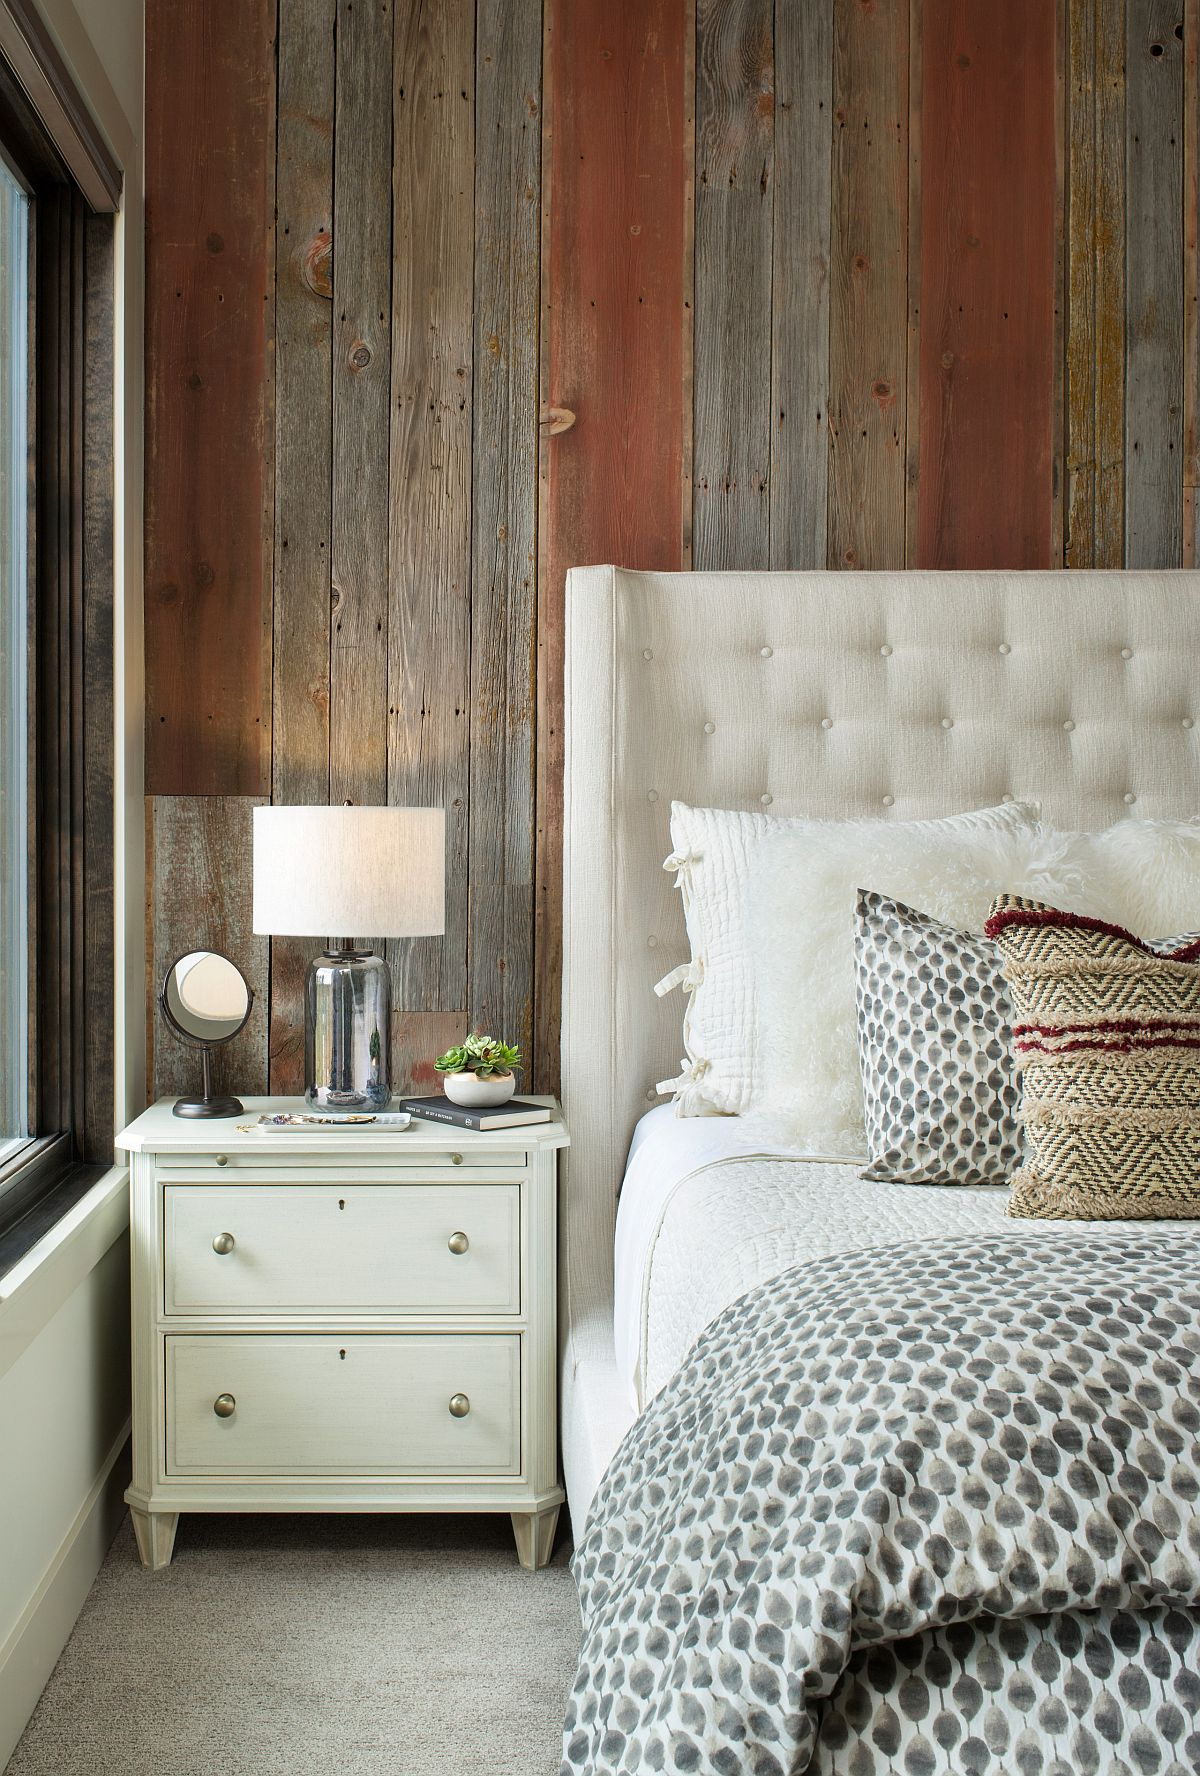 Custom accent wall in reclaimed wood for the modern bedroom